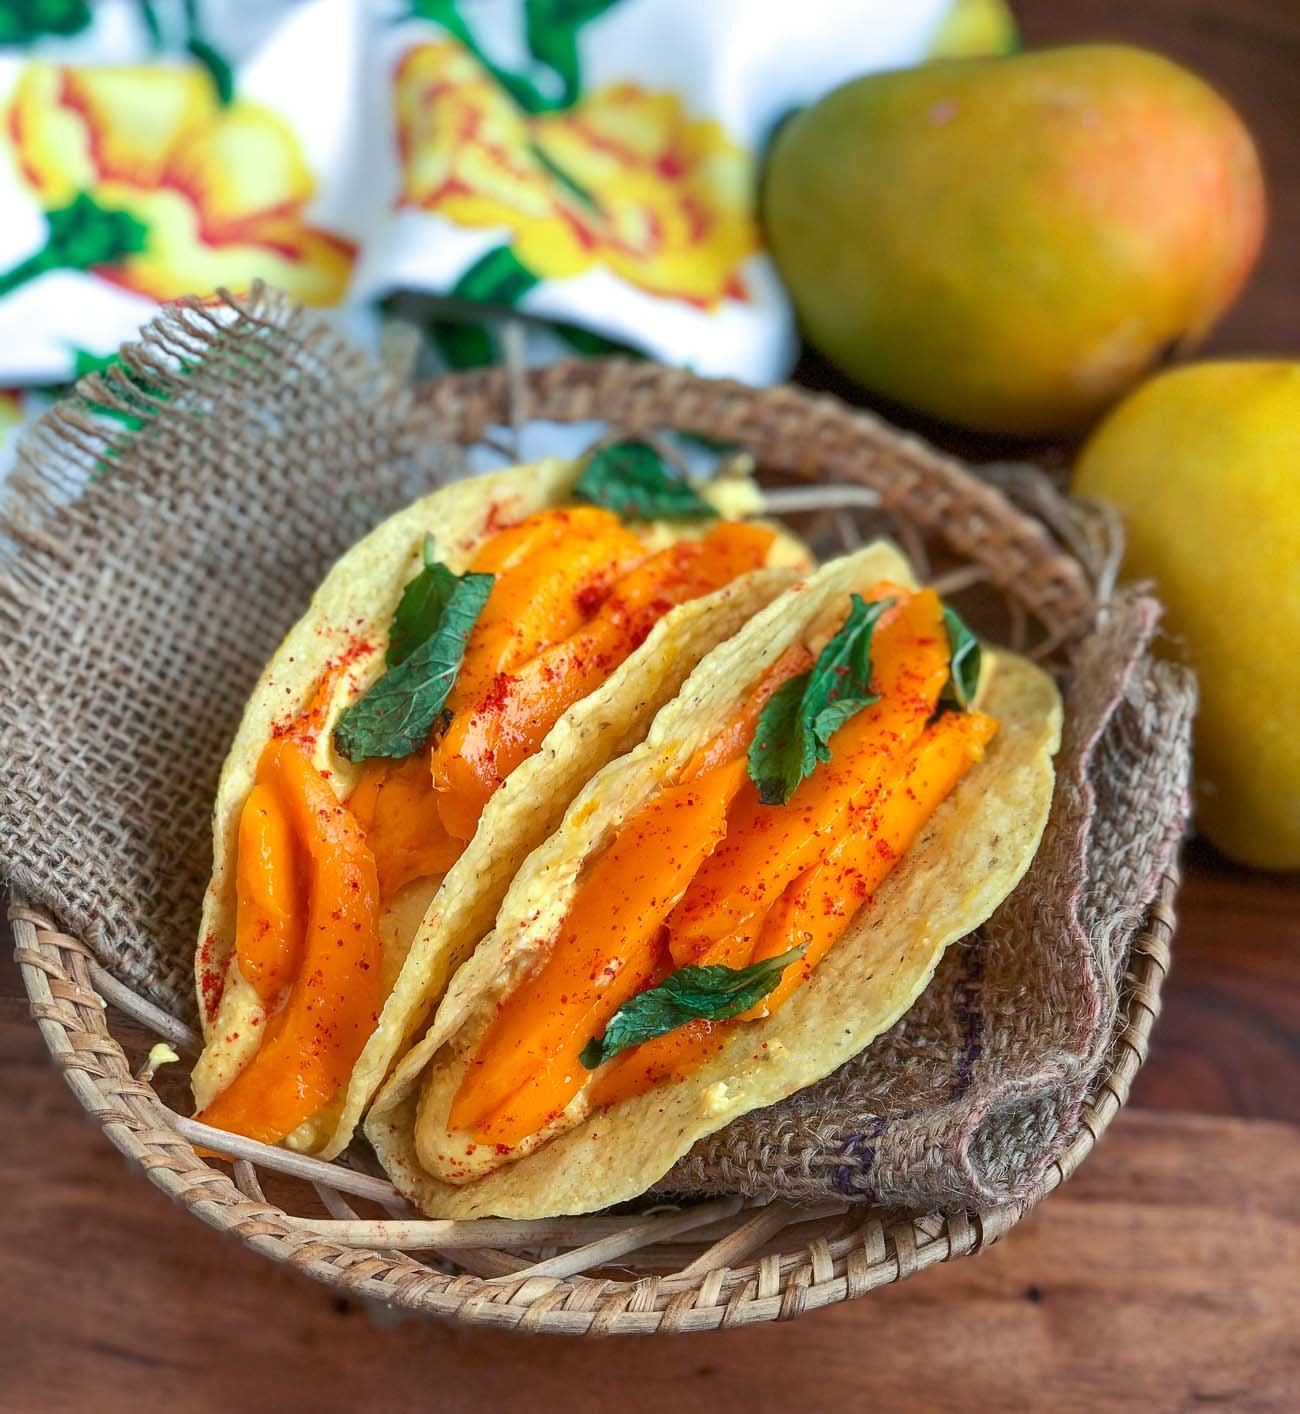 Mango Shrikhand Taco Recipe - Sweet Mango Yogurt Dip Taco